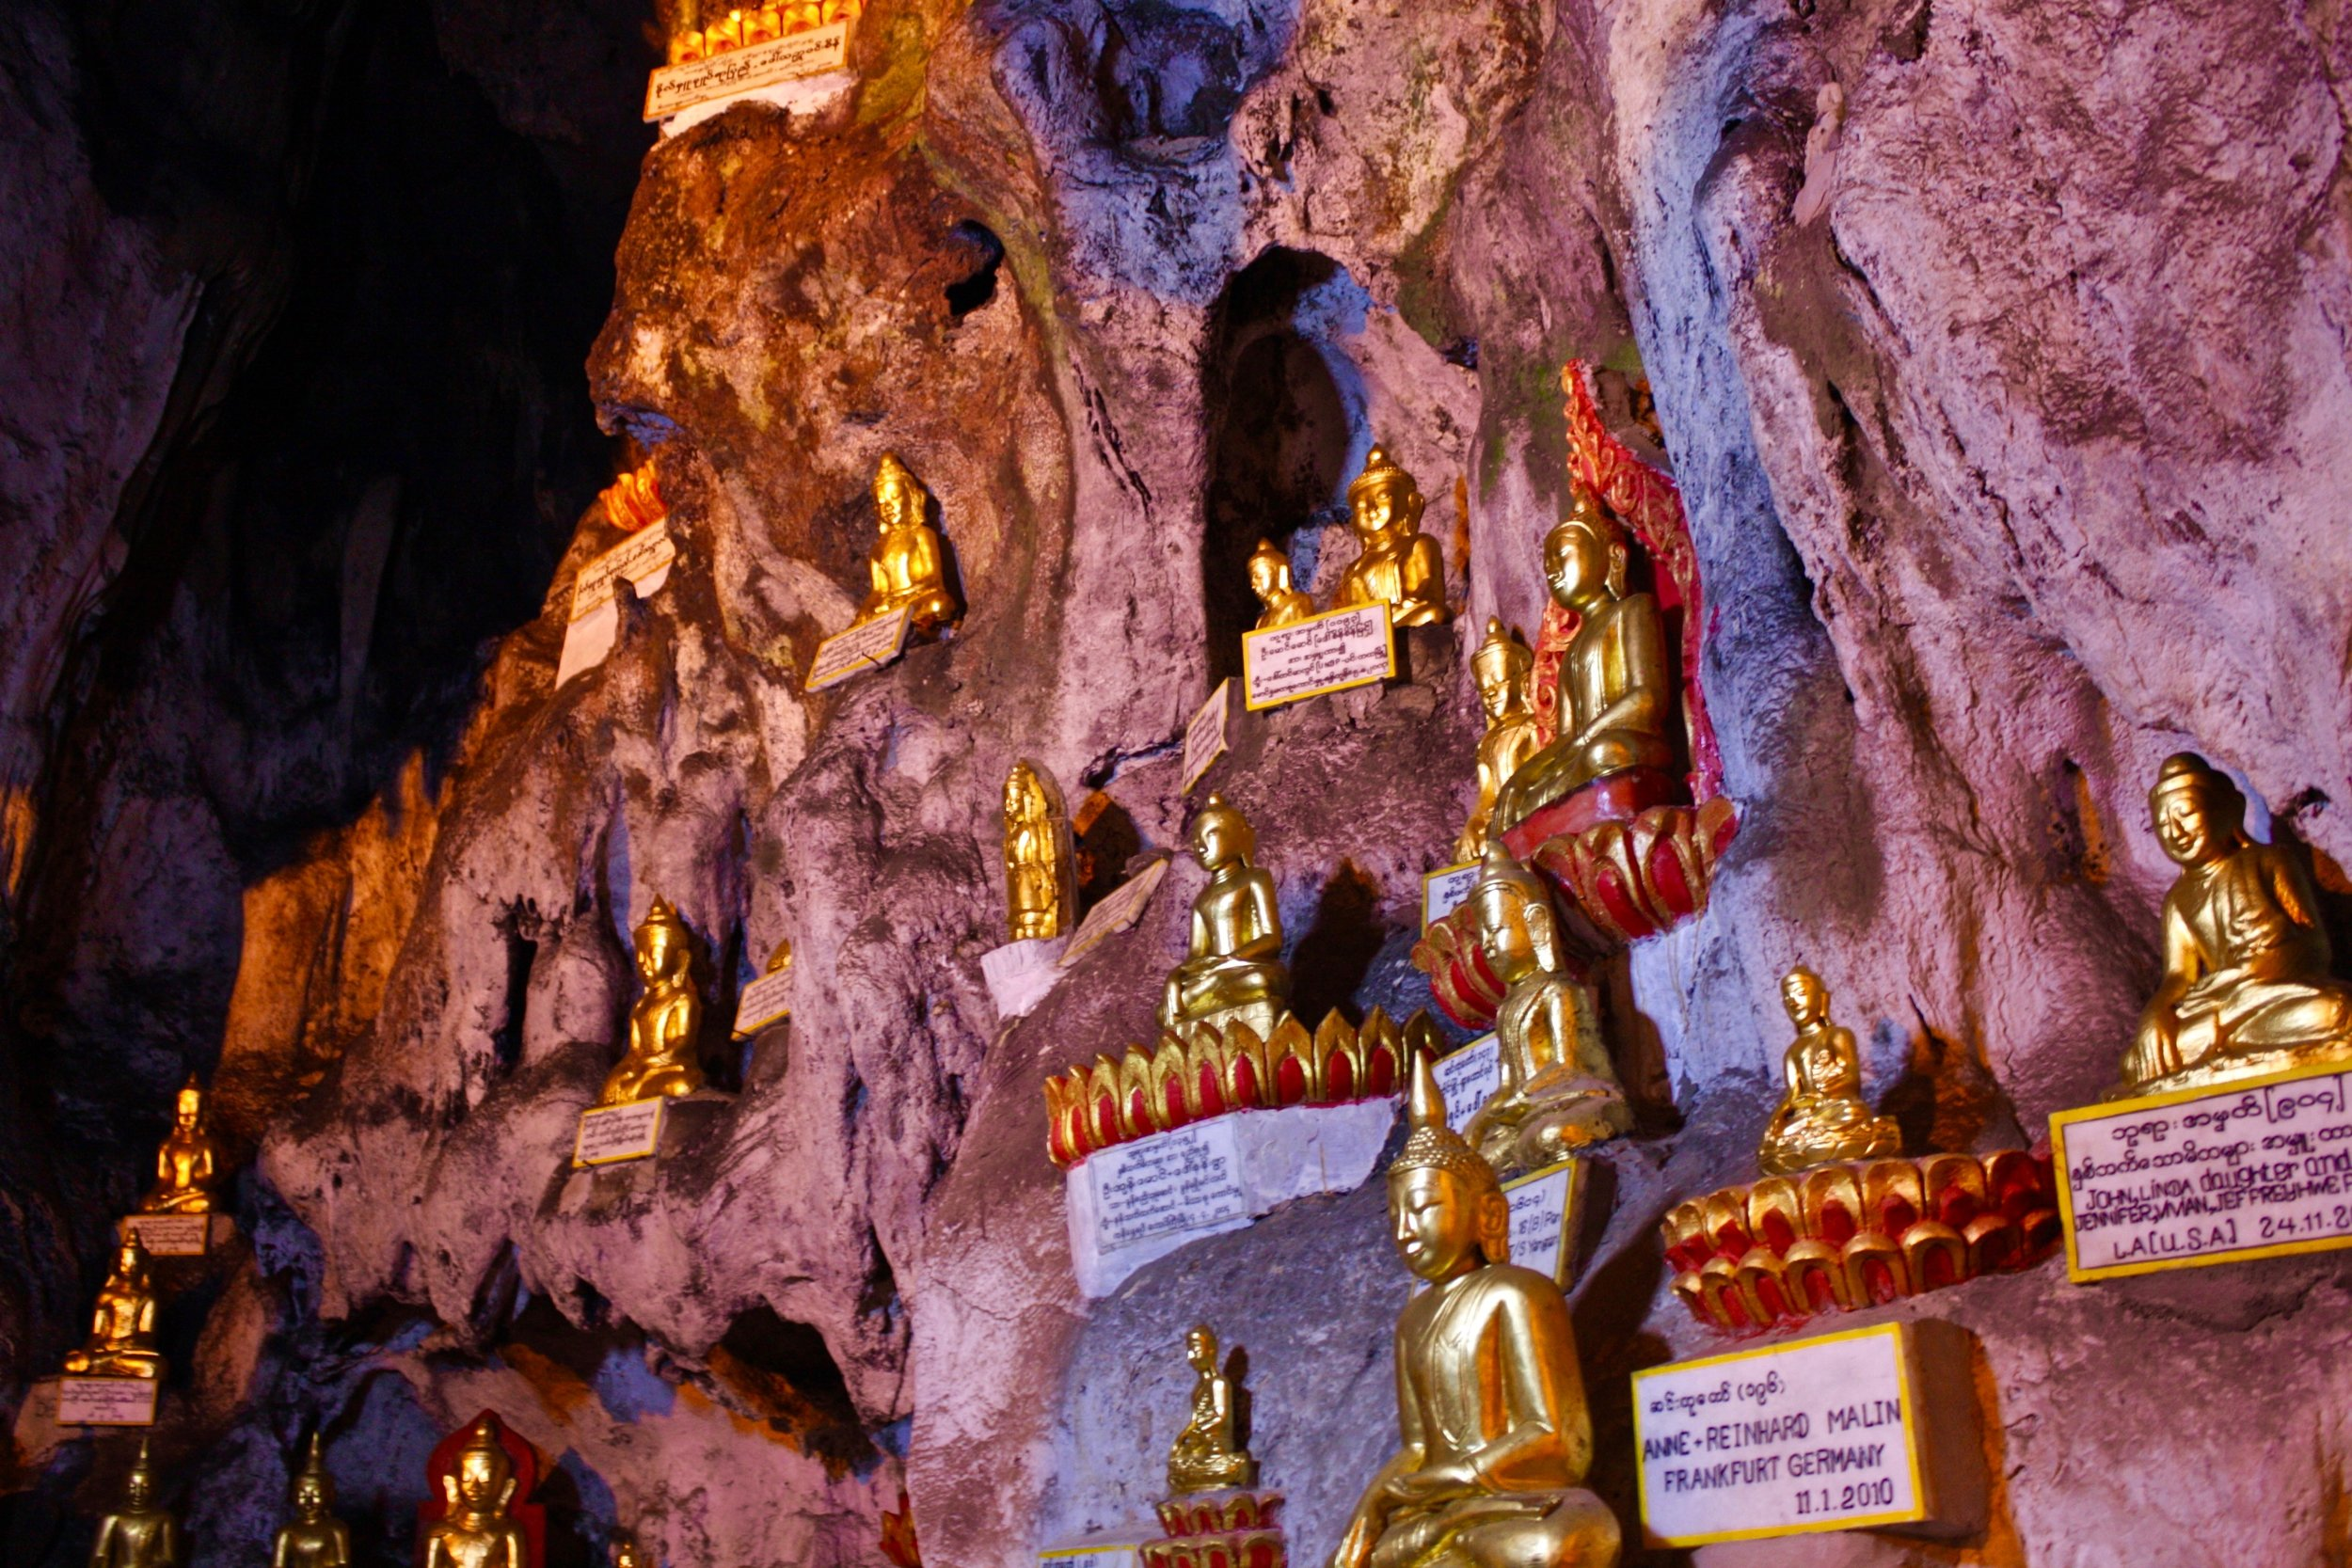 The Pindaya cave in Central Burma is an important Buddhist pilgrimage site. The cave is cramped with thousands of Buddha images in various styles and sizes.